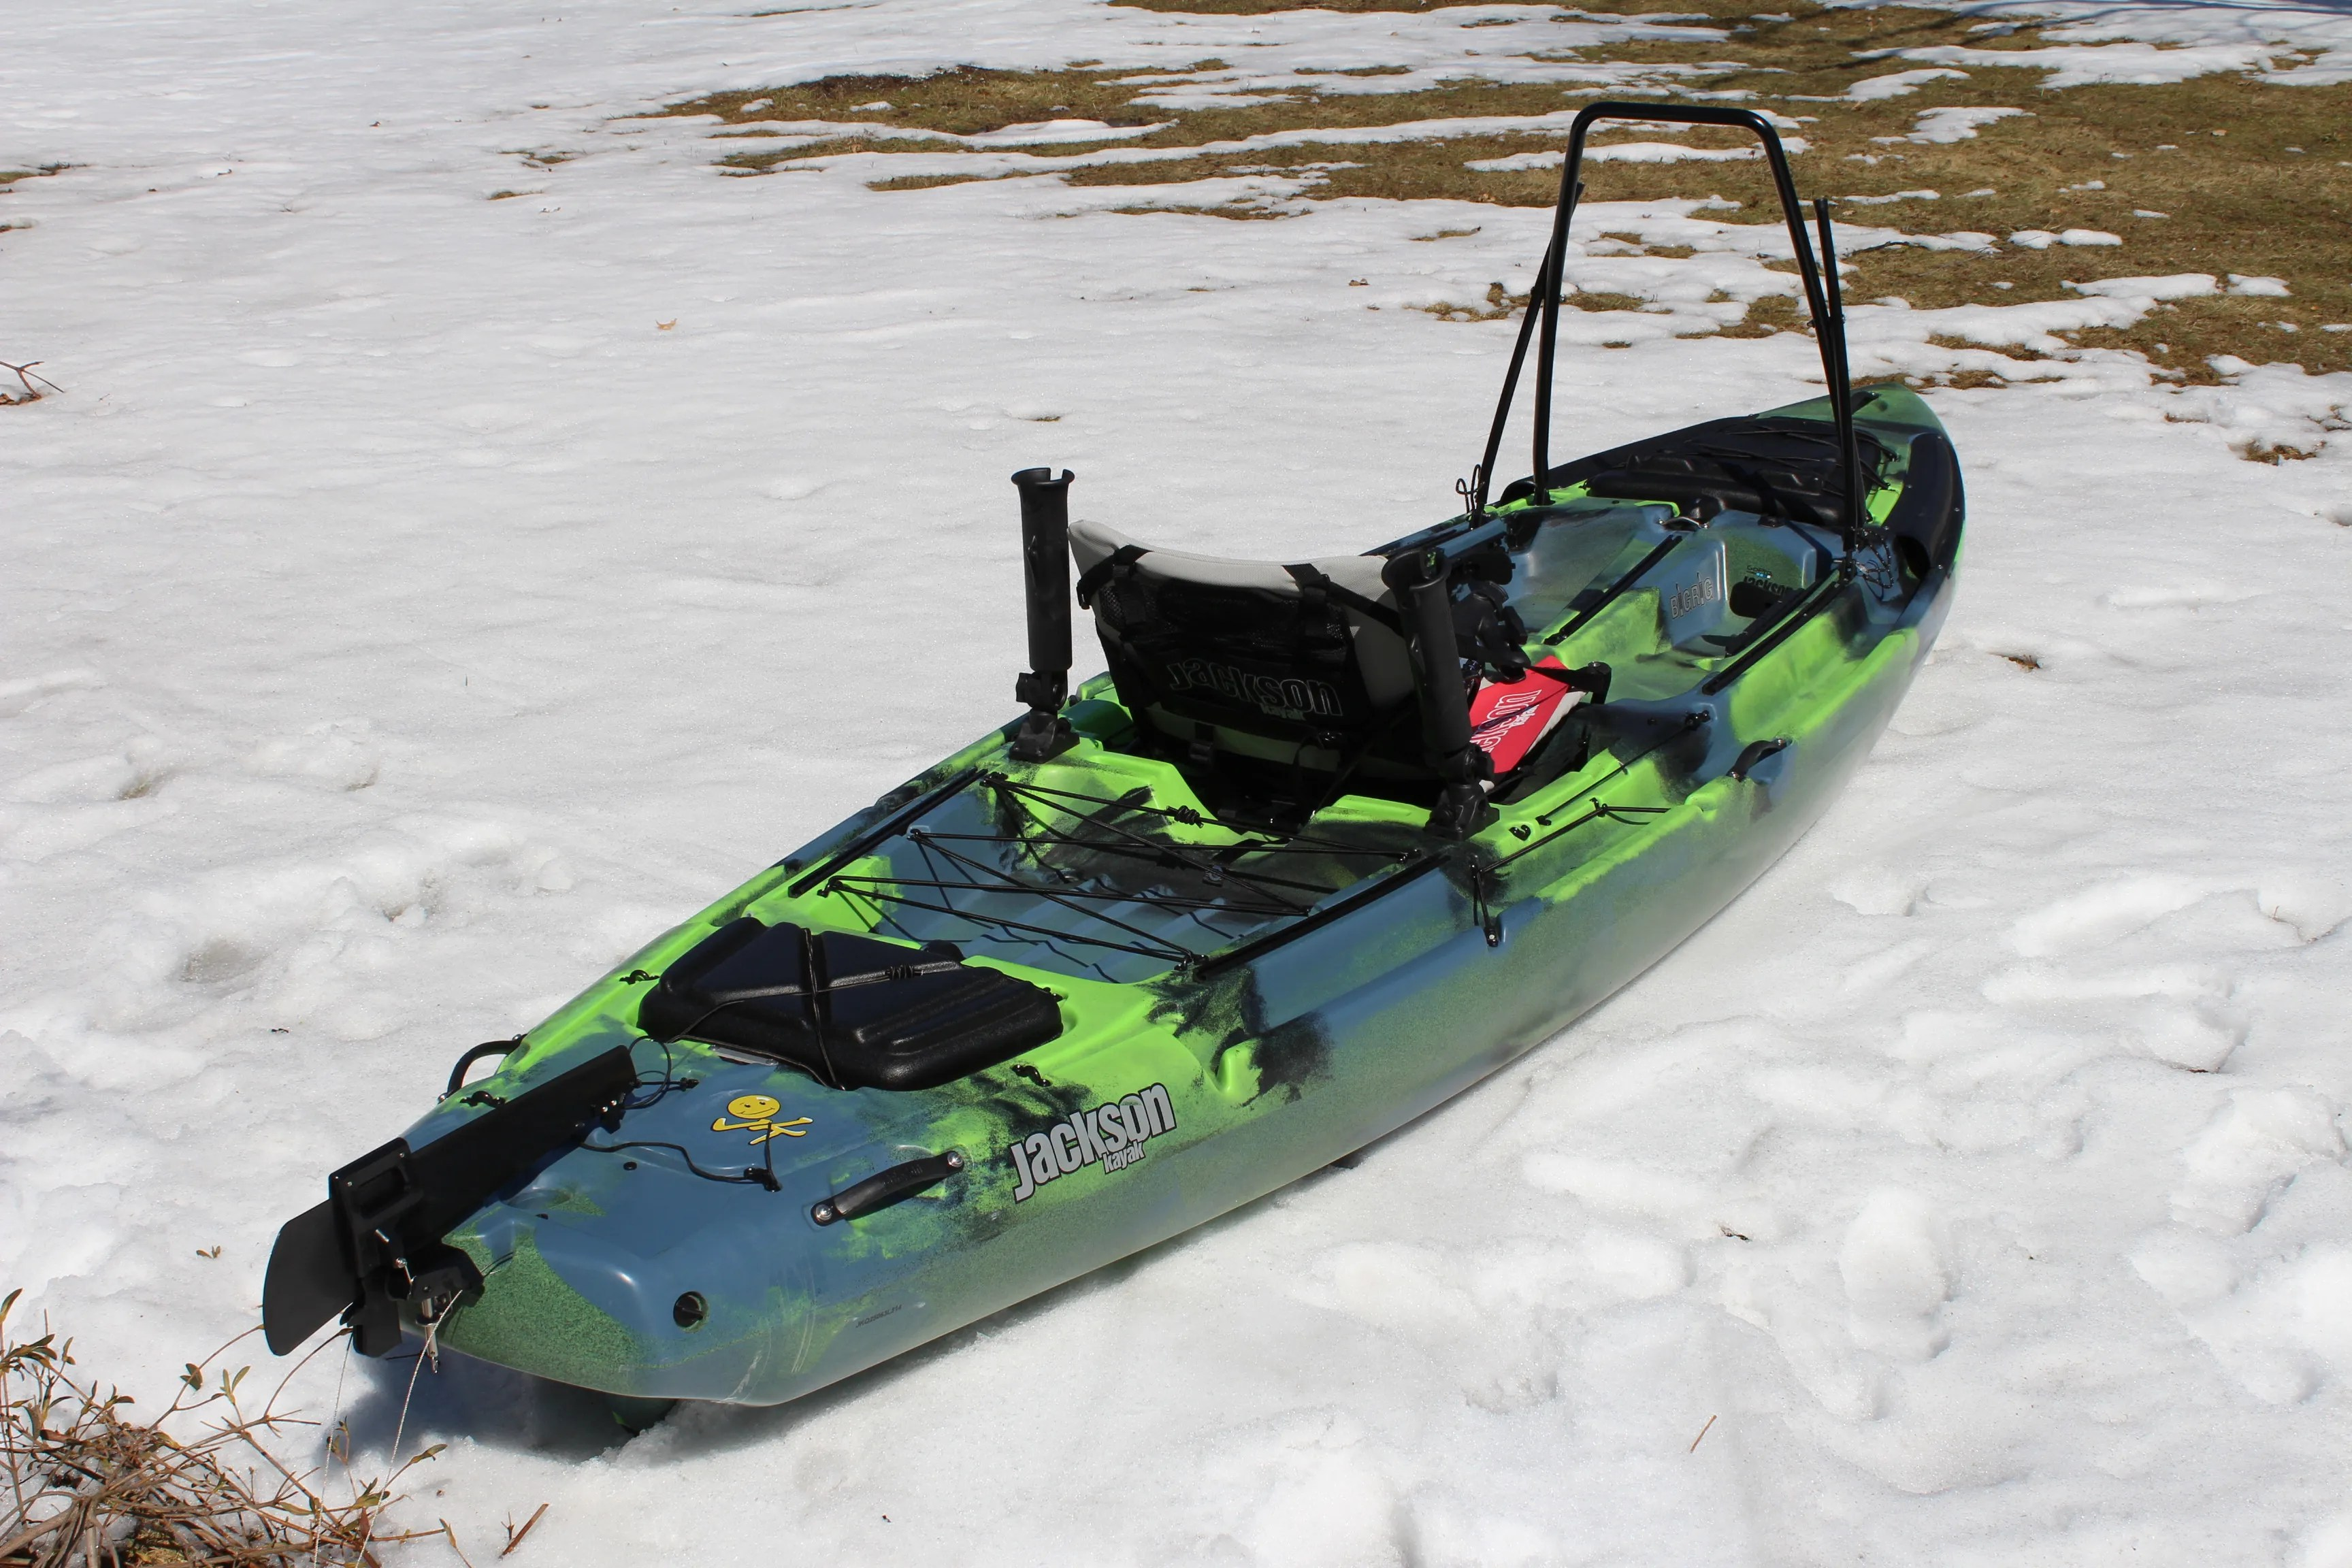 First Look At The 2014 Jackson Kayak Big Rig The Plastic